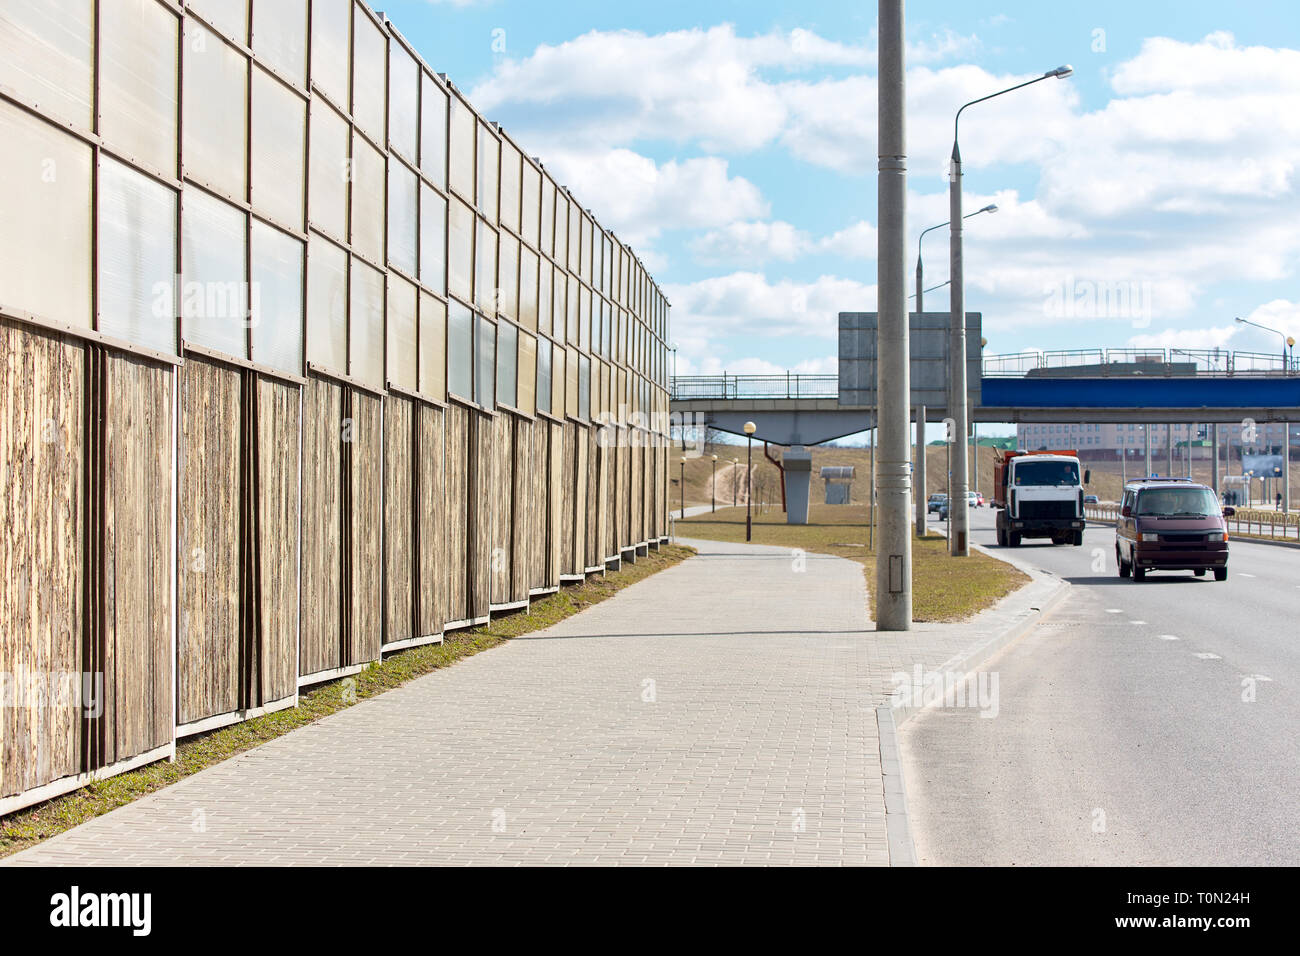 Sound absorbing panels along freeway in city. Concept of protecting residential buildings from noise pollution using sound insulating panels. - Stock Image